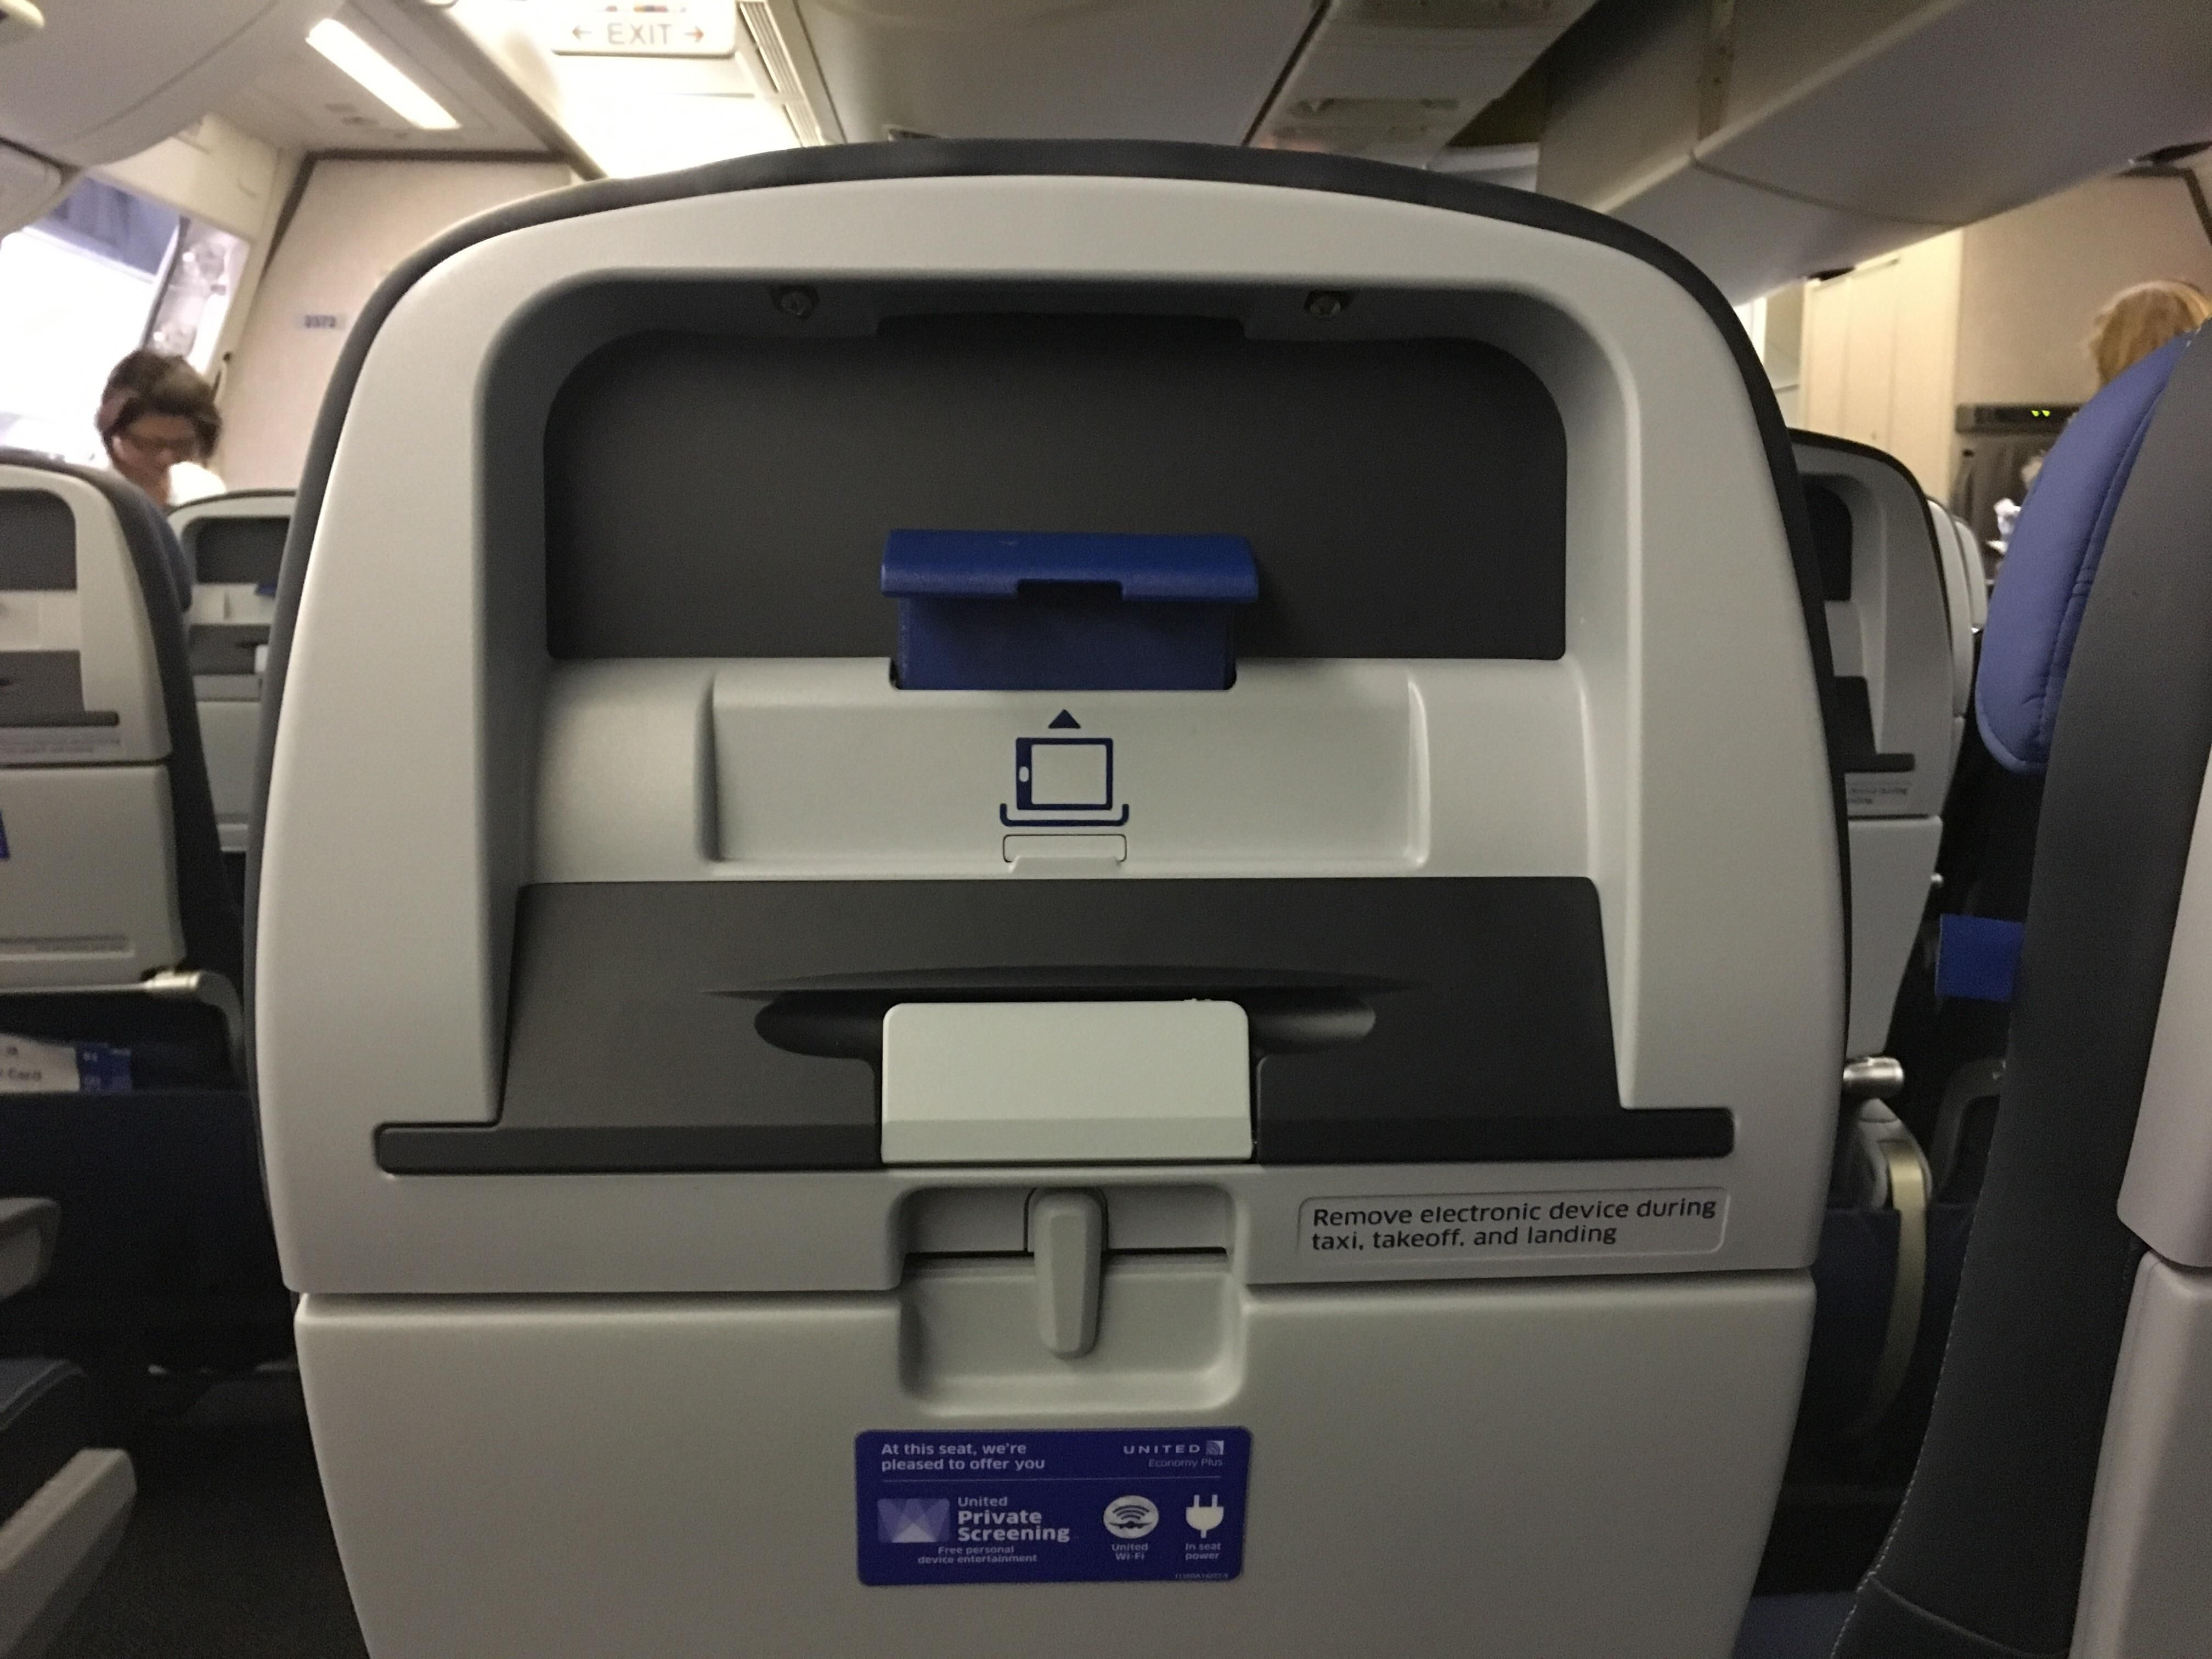 These airplane seats have a holder for your phone or